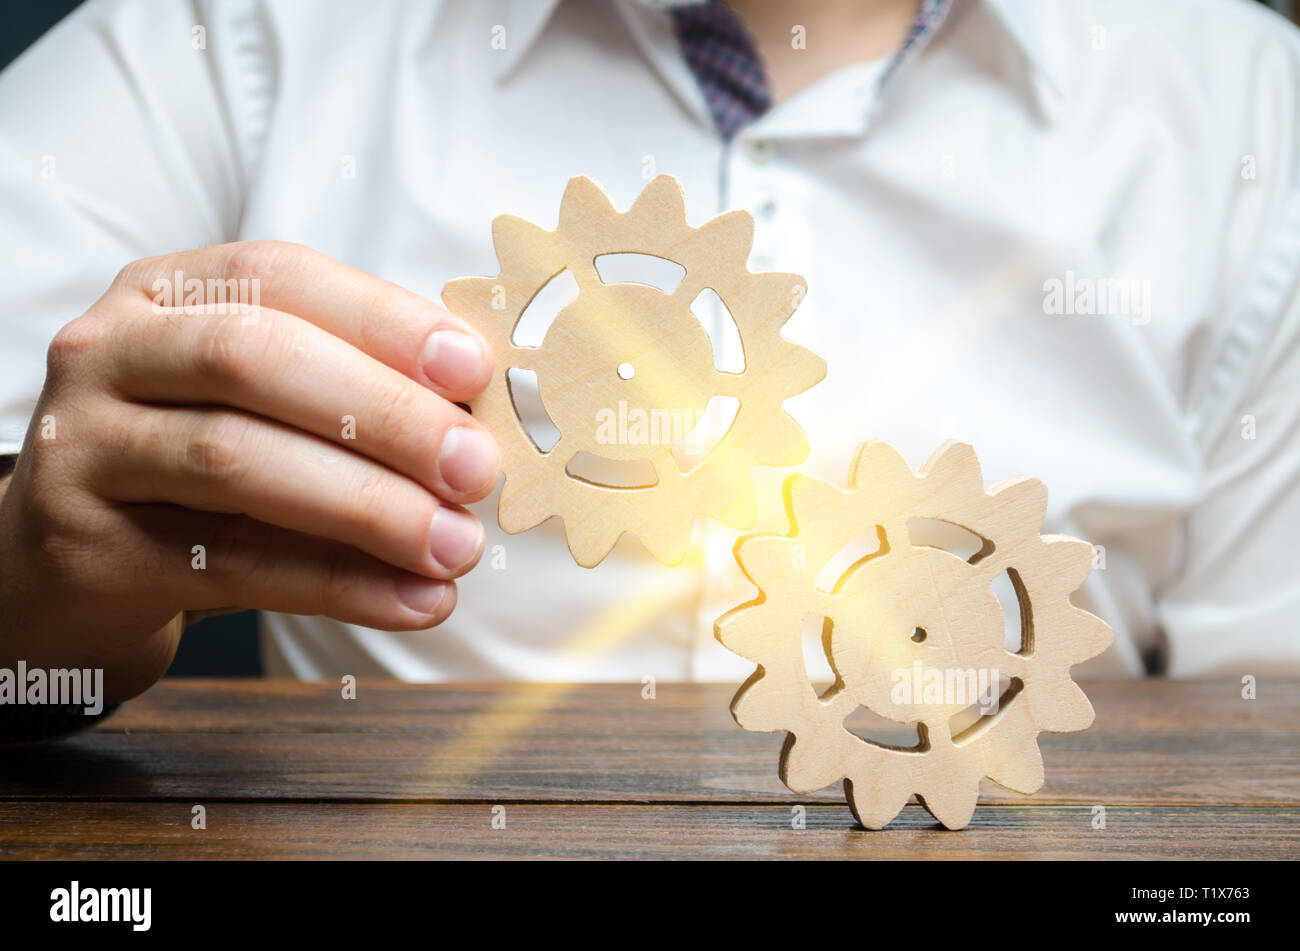 Businessman in white shirt connects two wooden gears. Symbolism of establishing business processes and communication. Increase efficiency and producti - Stock Image